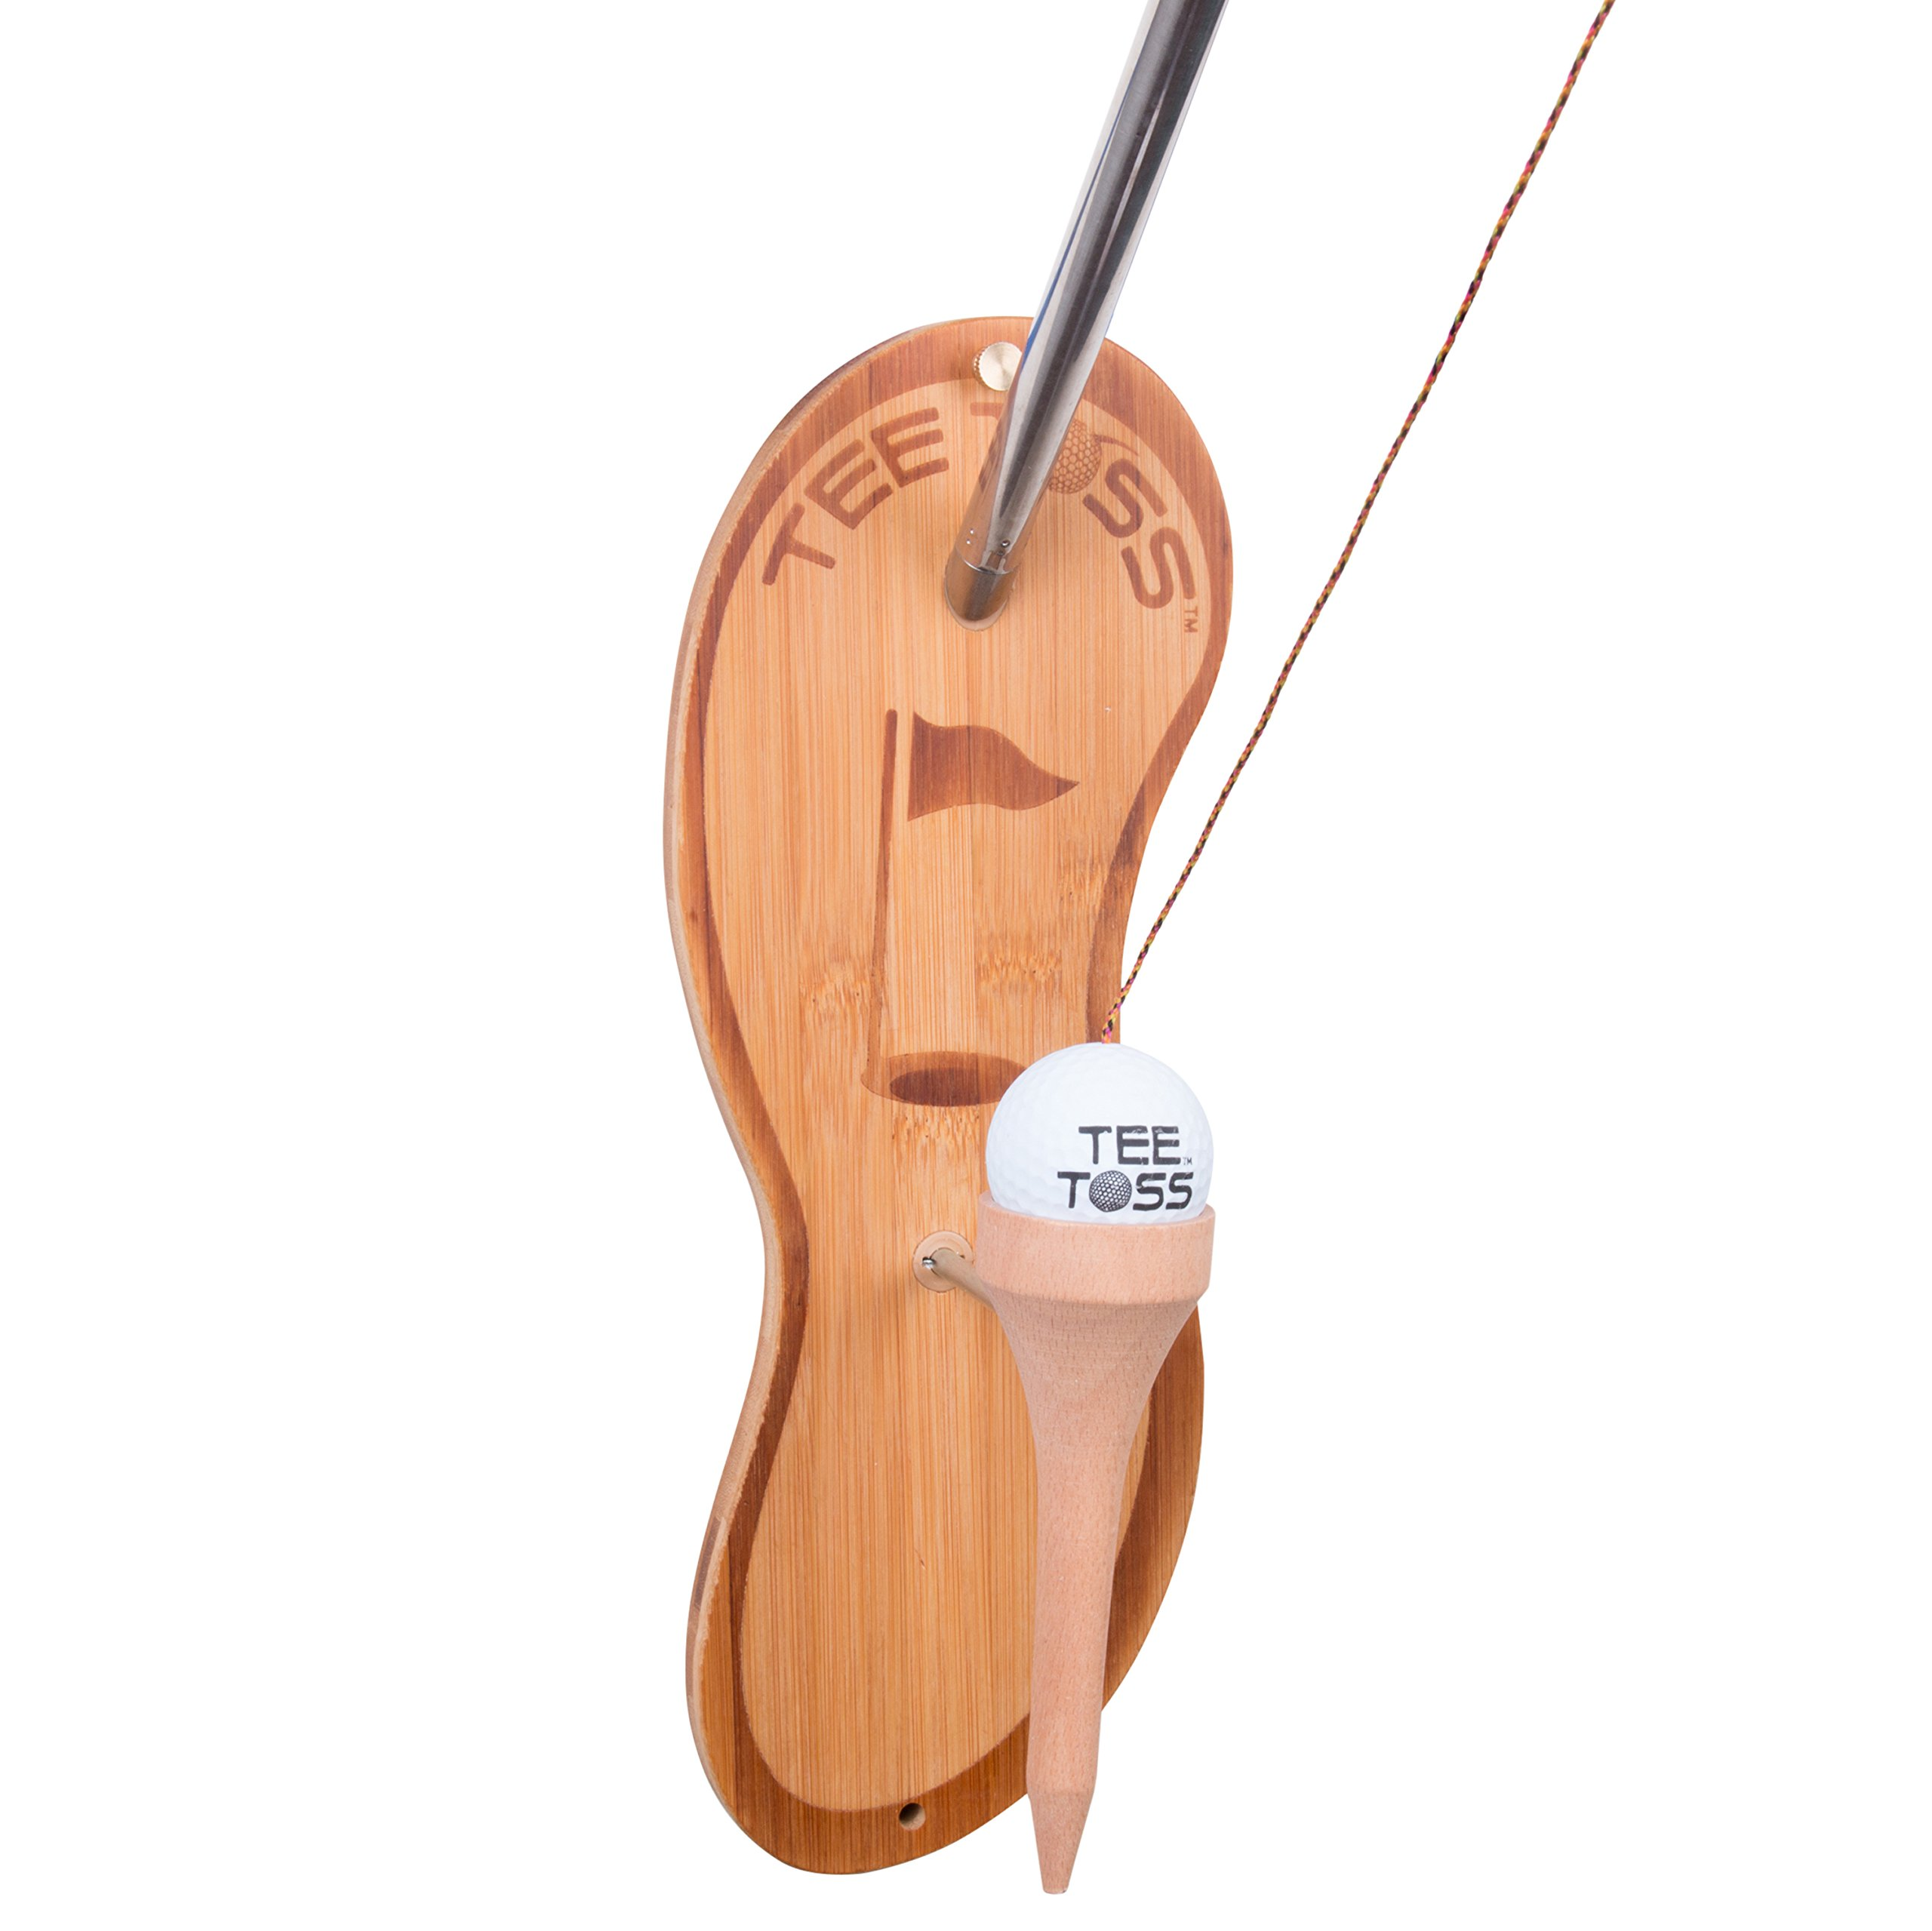 Golf Ball Deluxe Toss Game - 100% Bamboo - Be The First To Land The Ball Up On The Tee! (All Parts Included) by Tiki Toss